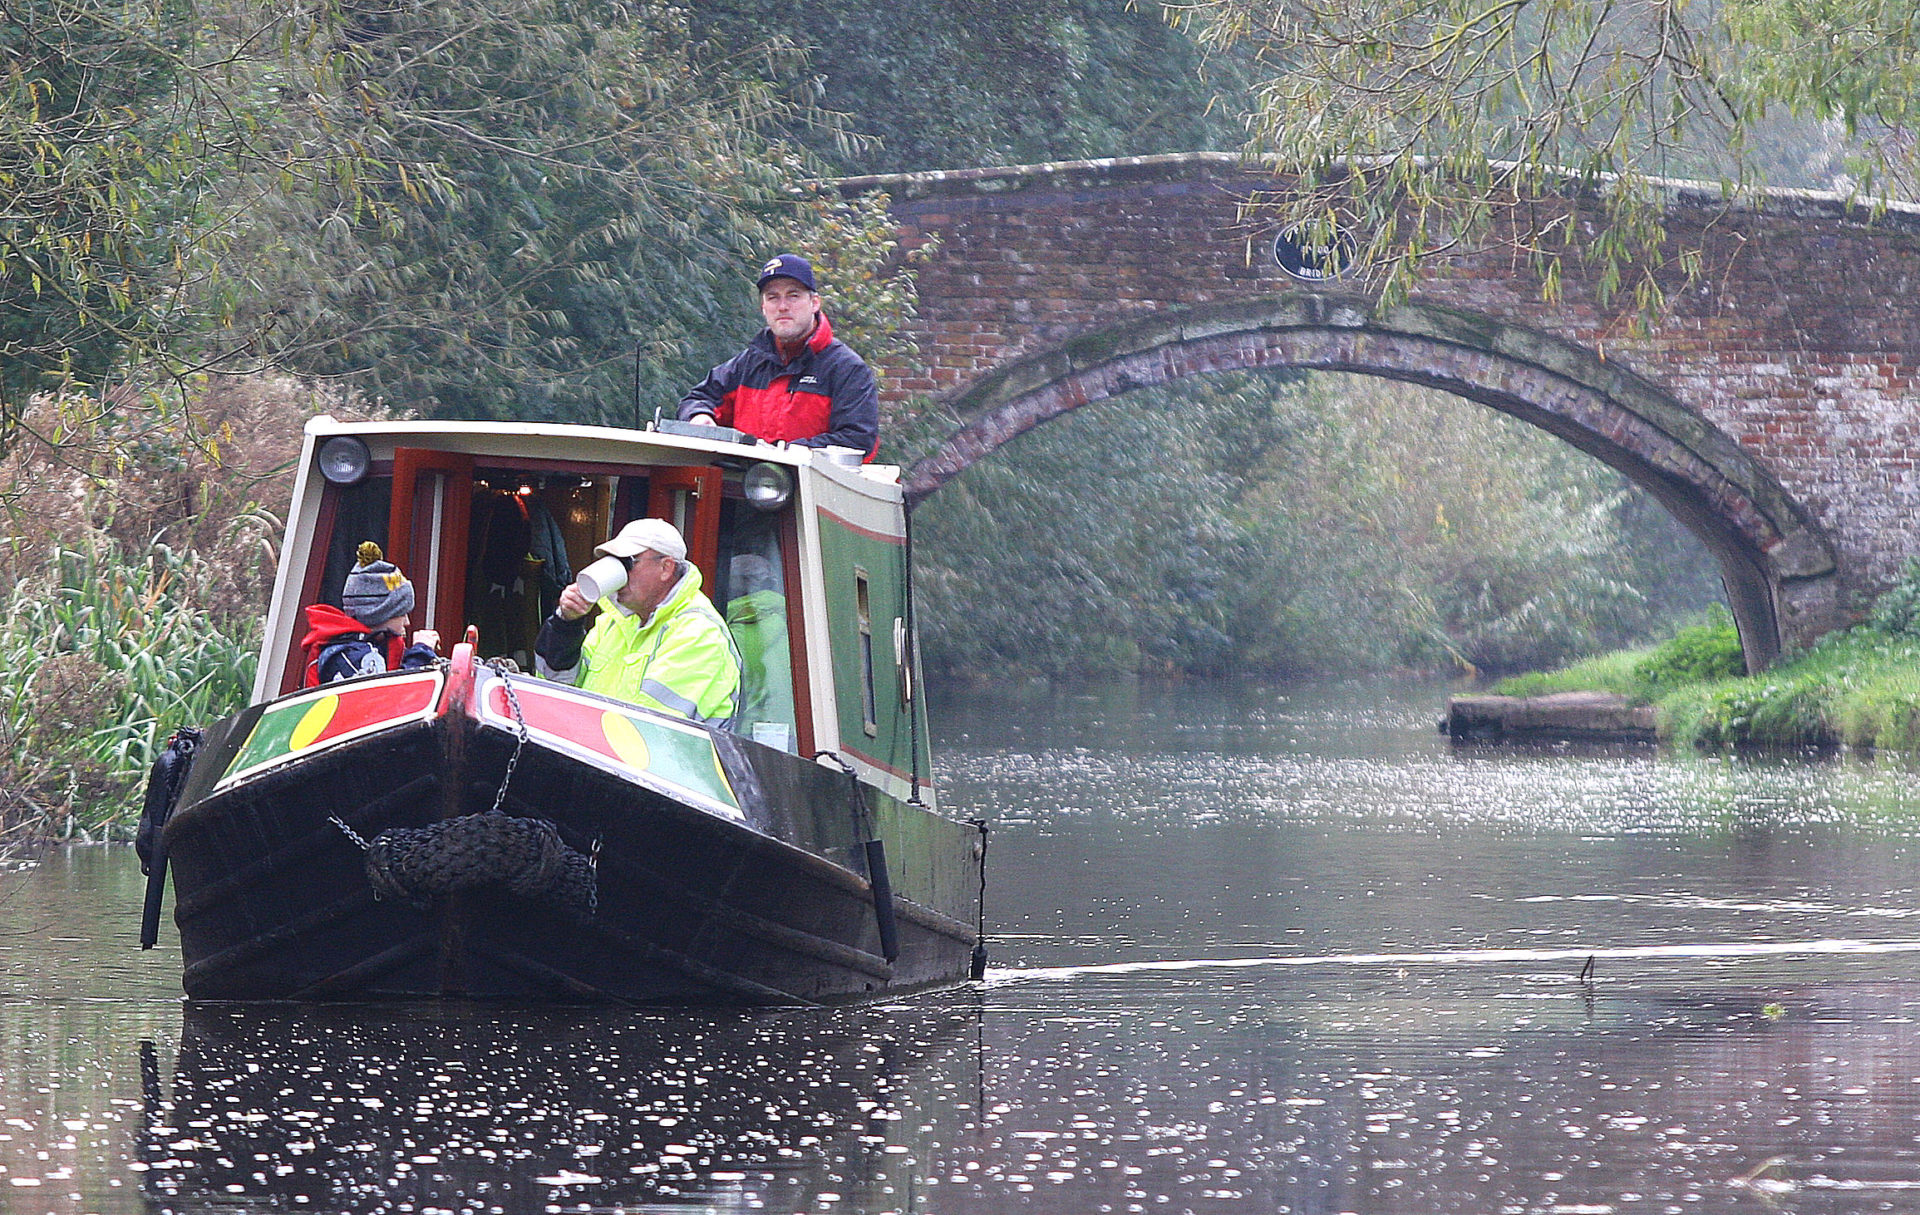 Hire boat making their way back to Great Haywood on the Staffs & Worcester canal.